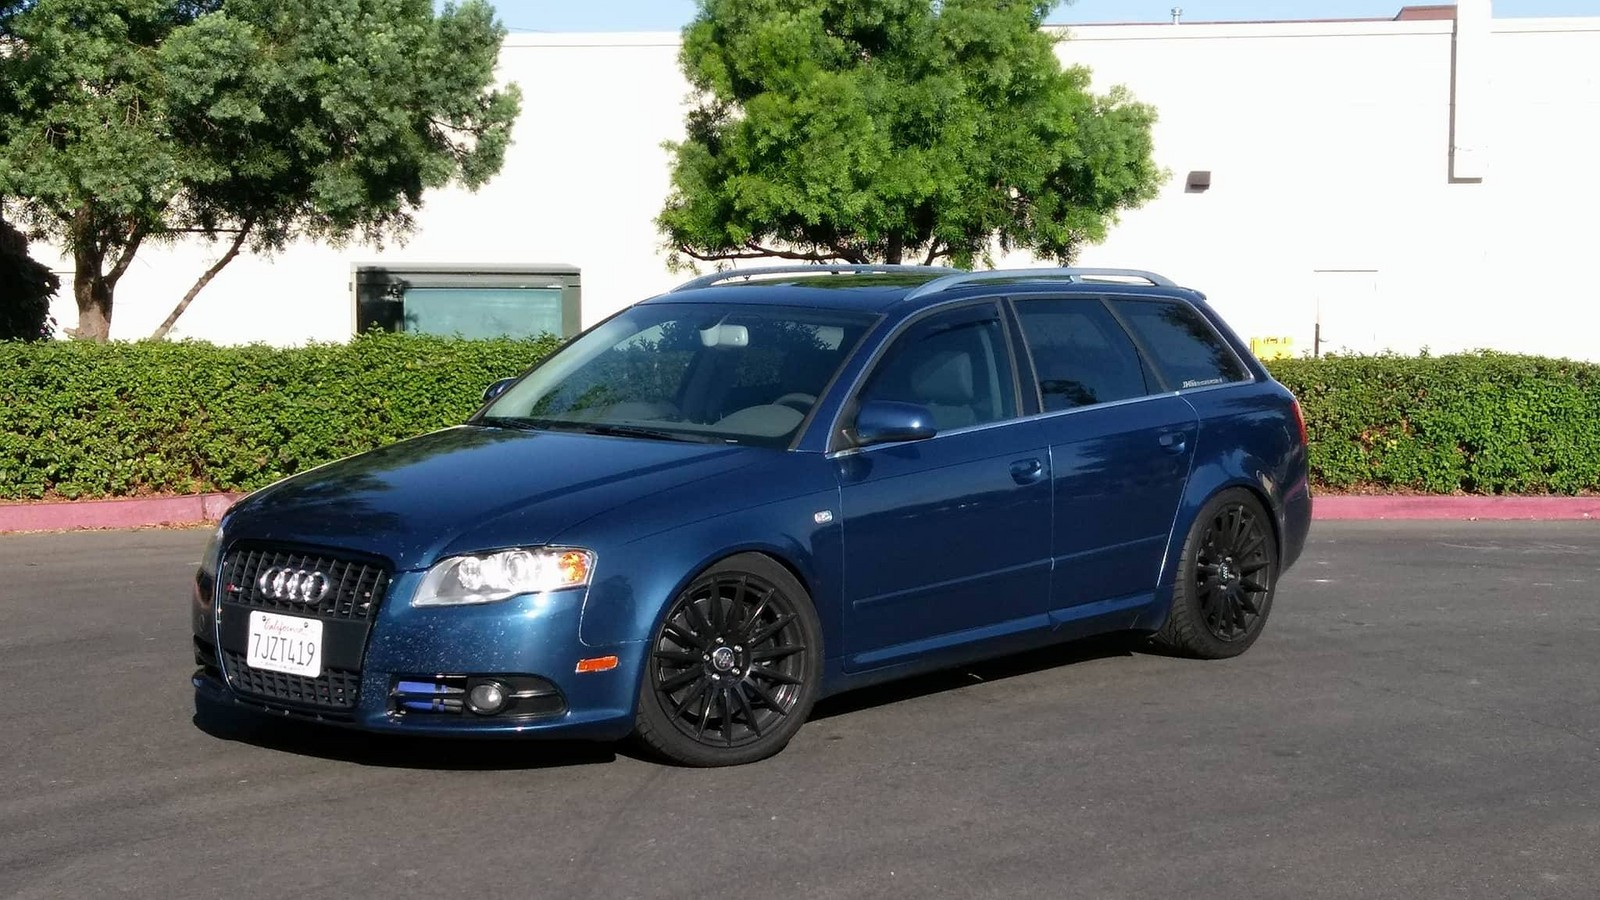 2008 audi a4 avant 2 0t 1 4 mile drag racing timeslip specs 0 60. Black Bedroom Furniture Sets. Home Design Ideas